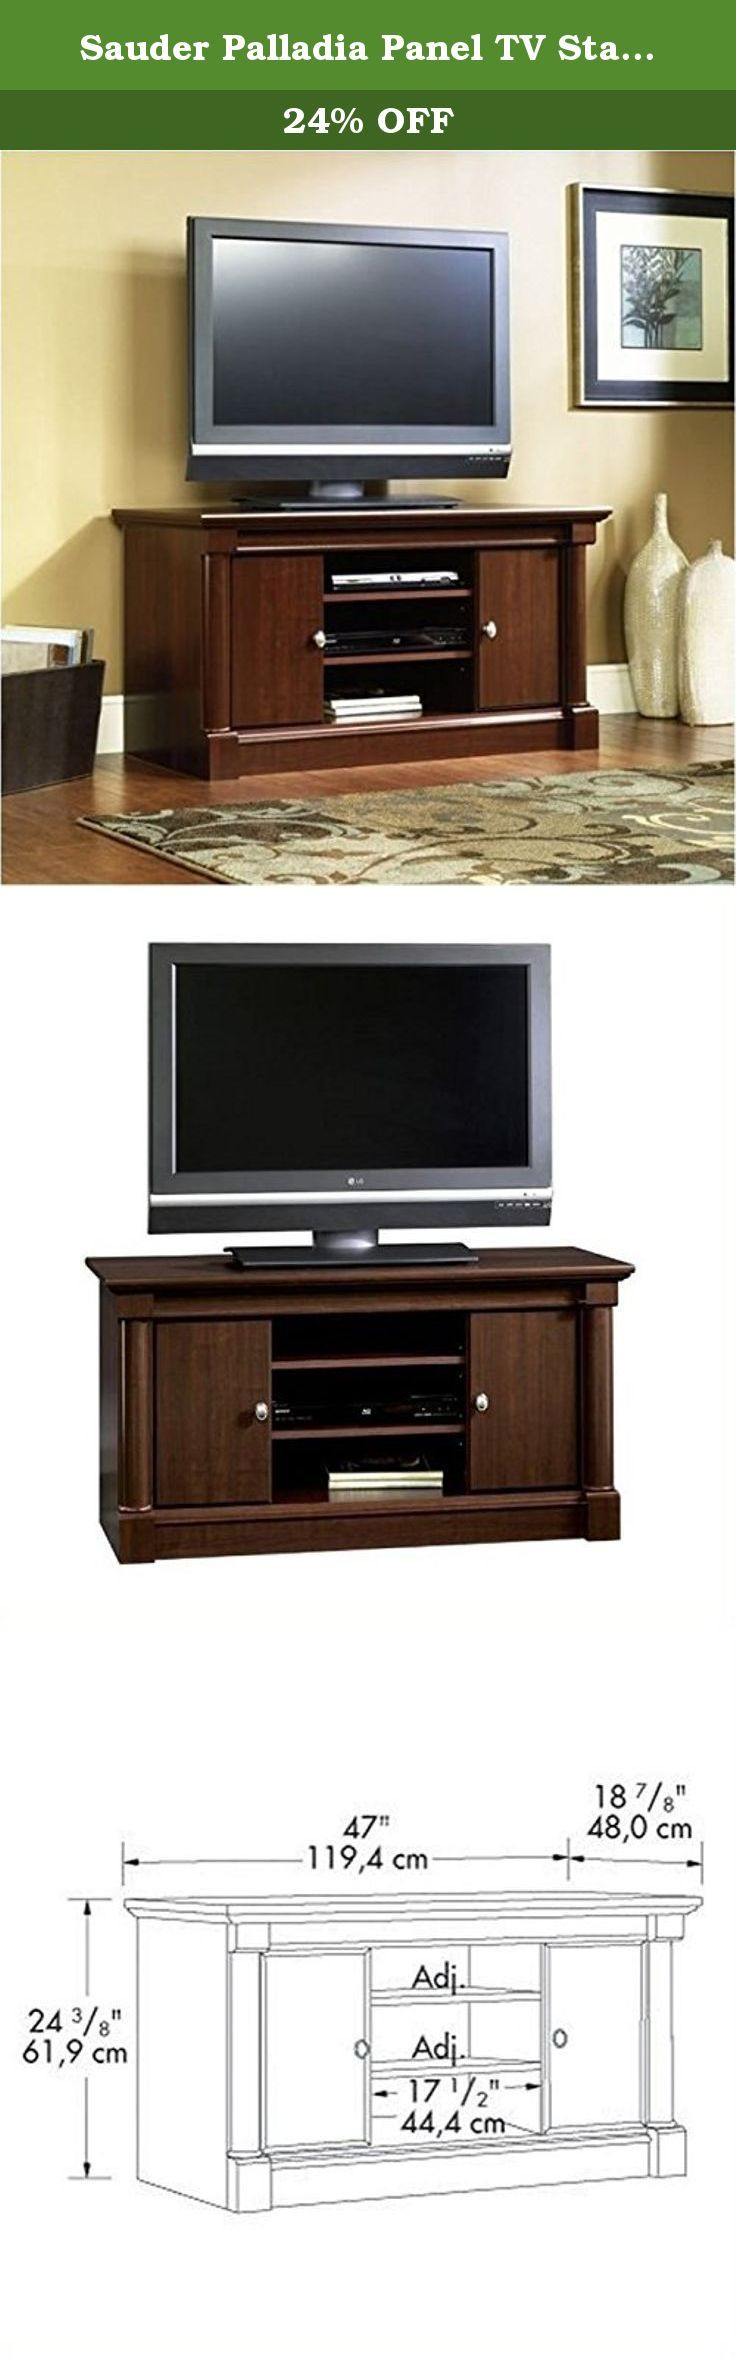 "Sauder Palladia Panel TV Stand, Select Cherry Finish. The Palladia Panel TV Stand in Select Cherry Finish by Sauder. Accommodates up to a 50"" TV weighing 95 lbs. or less. Two adjustable shelves hold audio/video equipment. Adjustable shelf behind each door holds DVDs and CDs. Palladia will be an instant classic in your room."